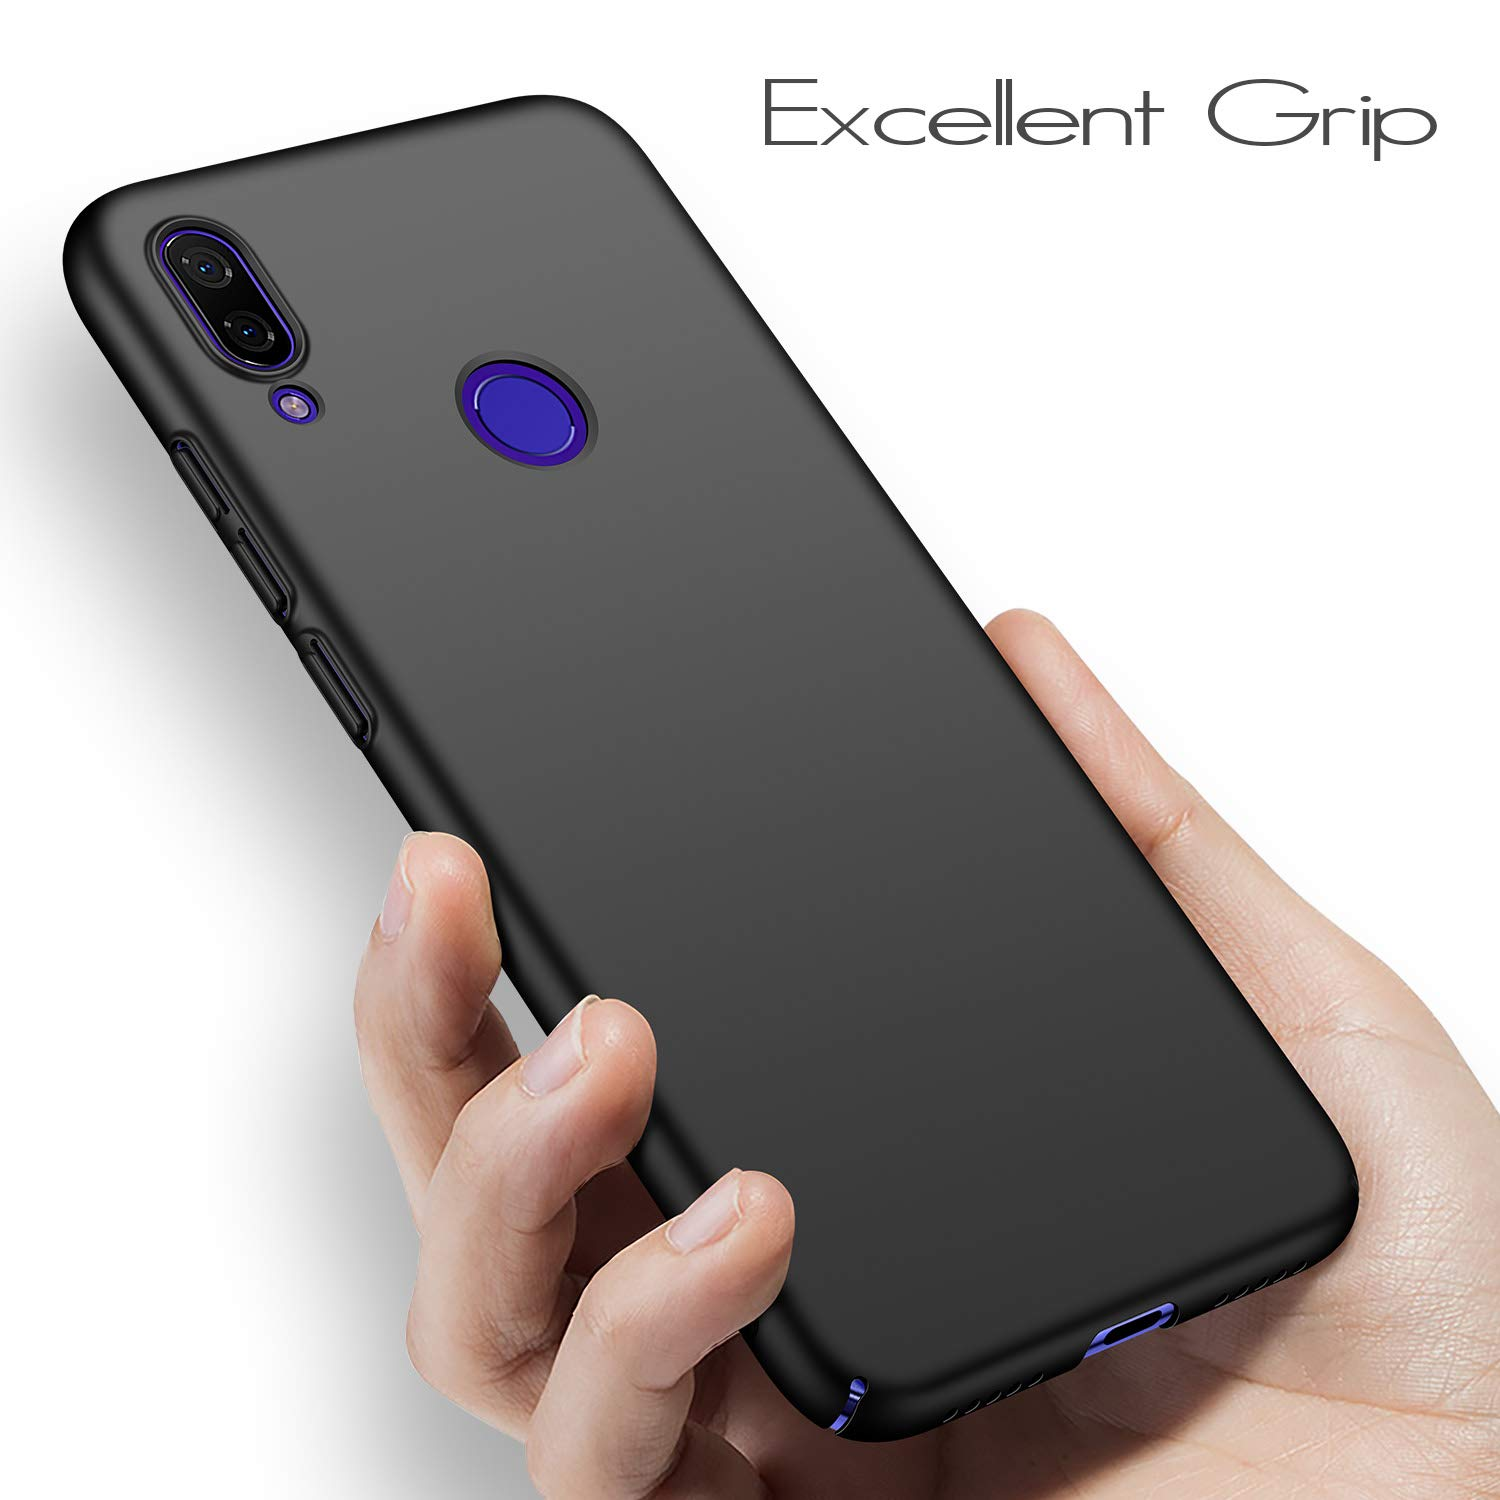 anccer Colorful Series for Xiaomi Redmi Note 7 Pro Case Ultra Thin Fit Premium PC Material Slim Cover for Xiaomi Redmi Note 7 Pro - Black